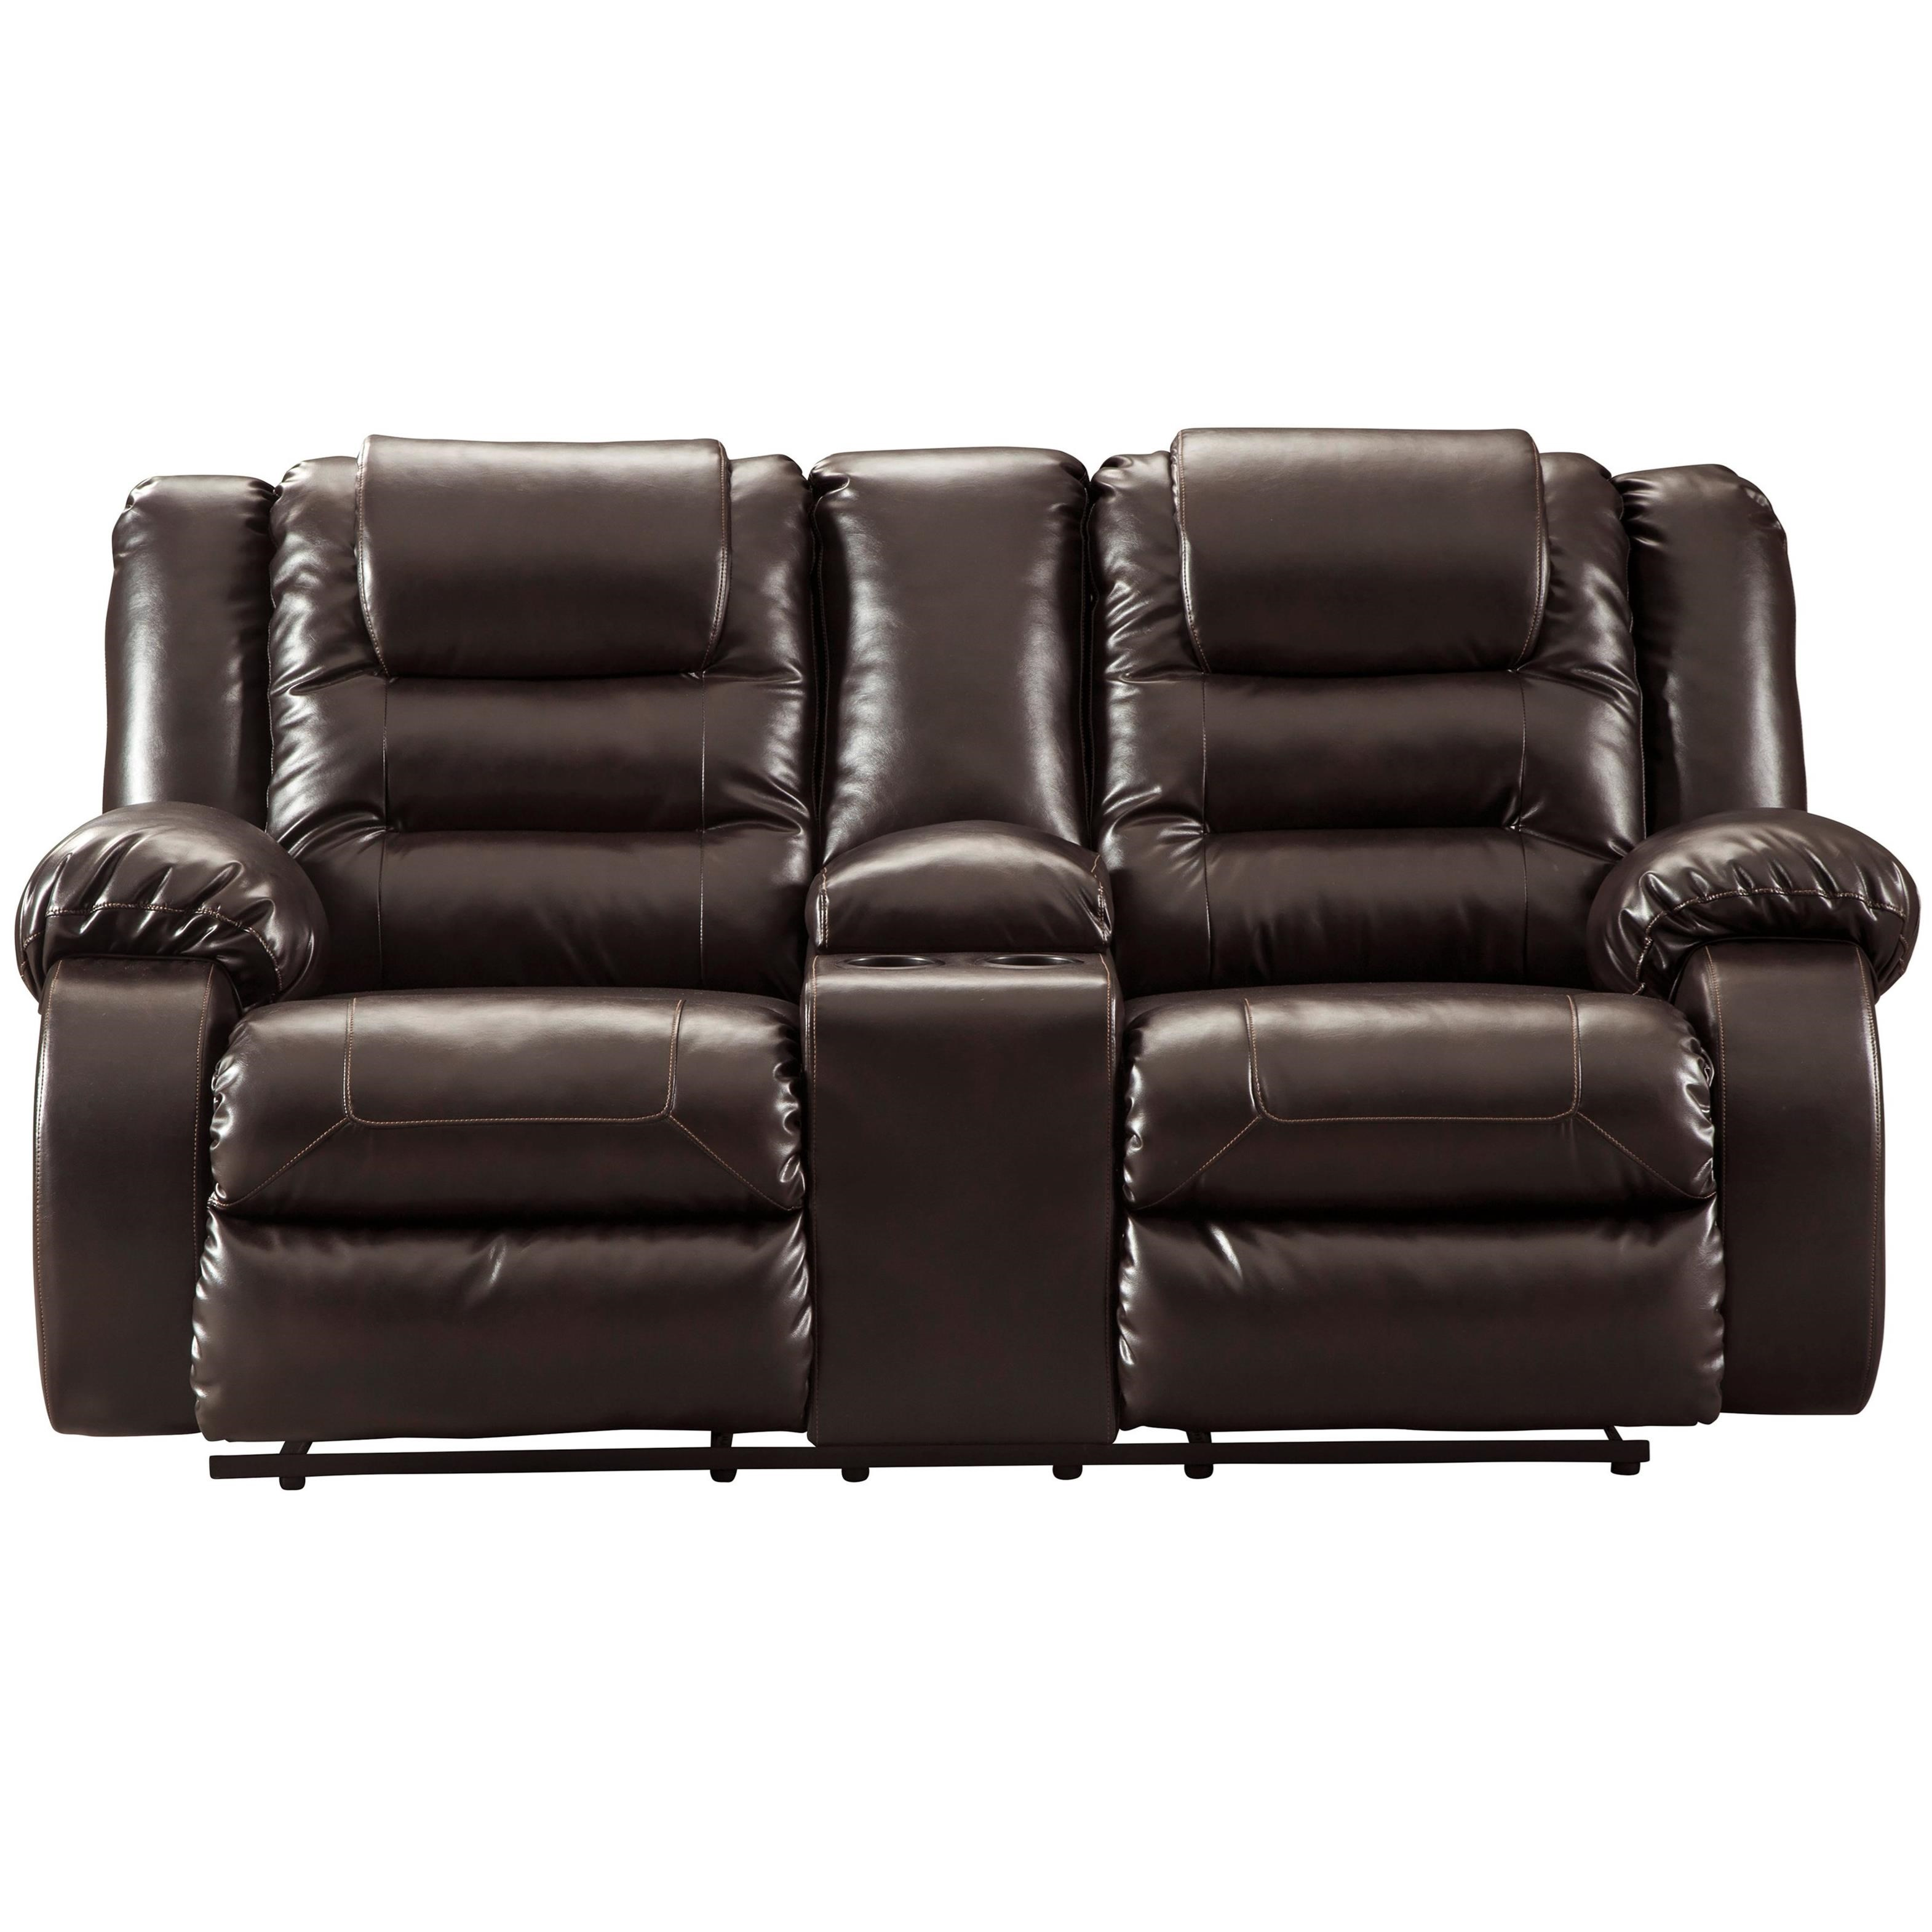 double glass to cool black leather design uncategorized a rest is container excellent his recliner iron shape foot there two brown rectangular and people sit loveseat feet comfortable